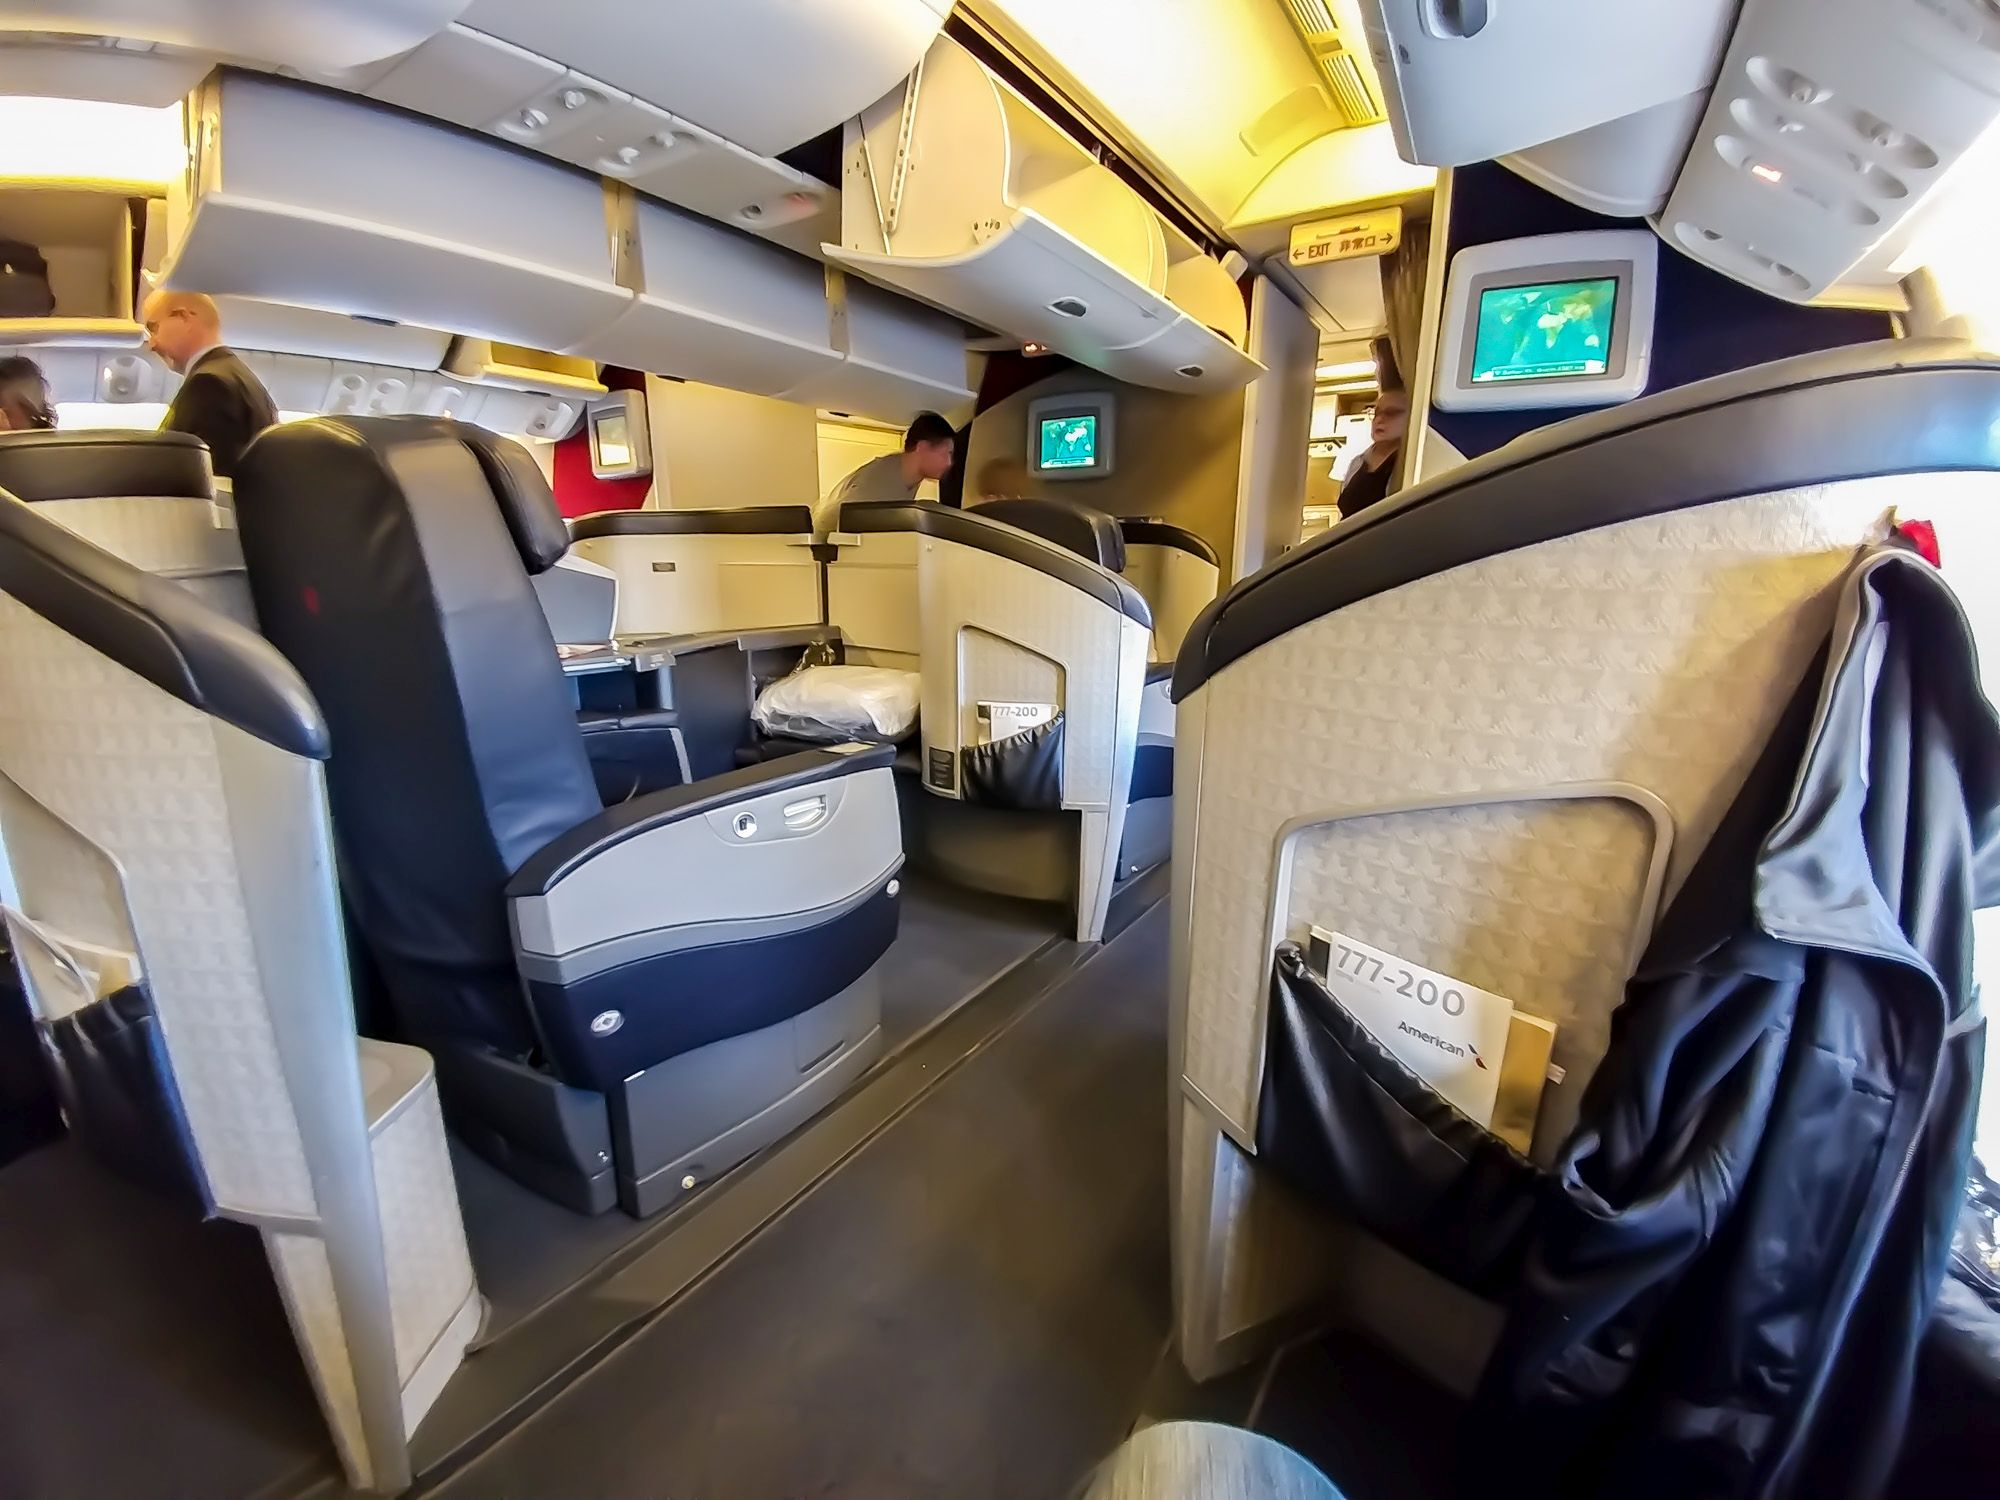 Flight Review: American Airlines First Class – Boeing 777 Frankfurt (FRA) to Dallas/Fort Worth (DFW)